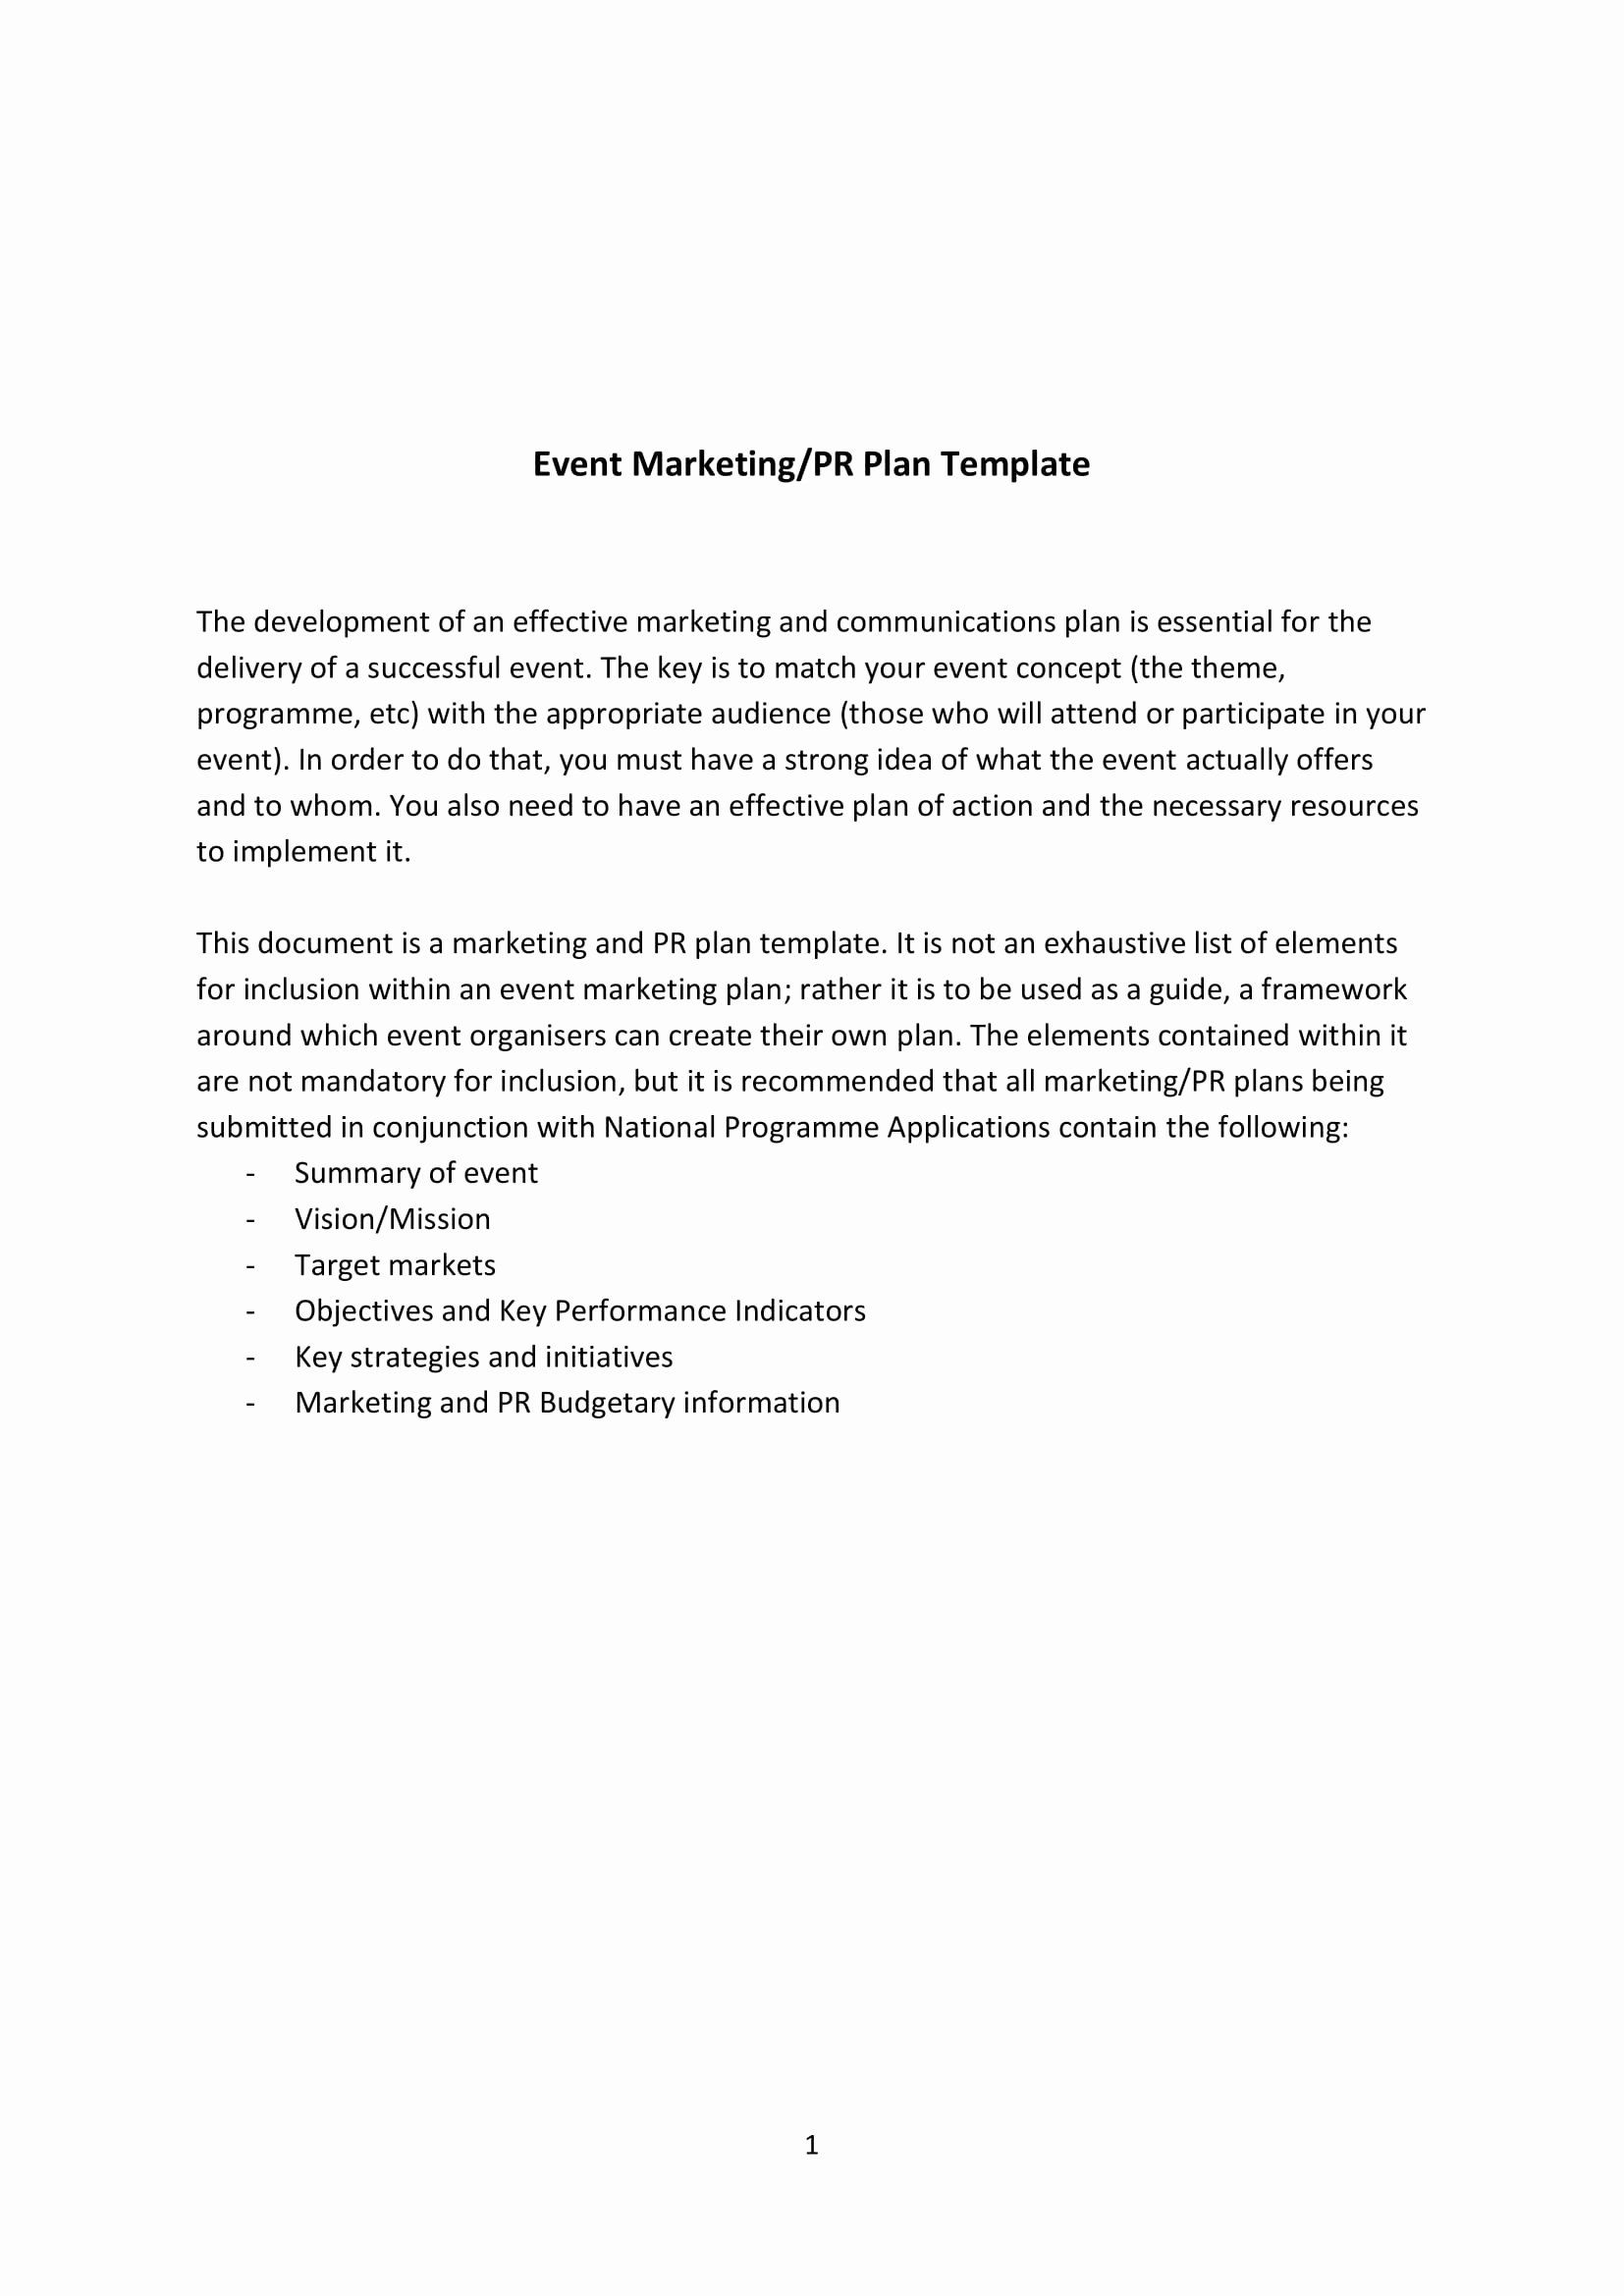 Event Marketing Plan Template in 2020 Event marketing